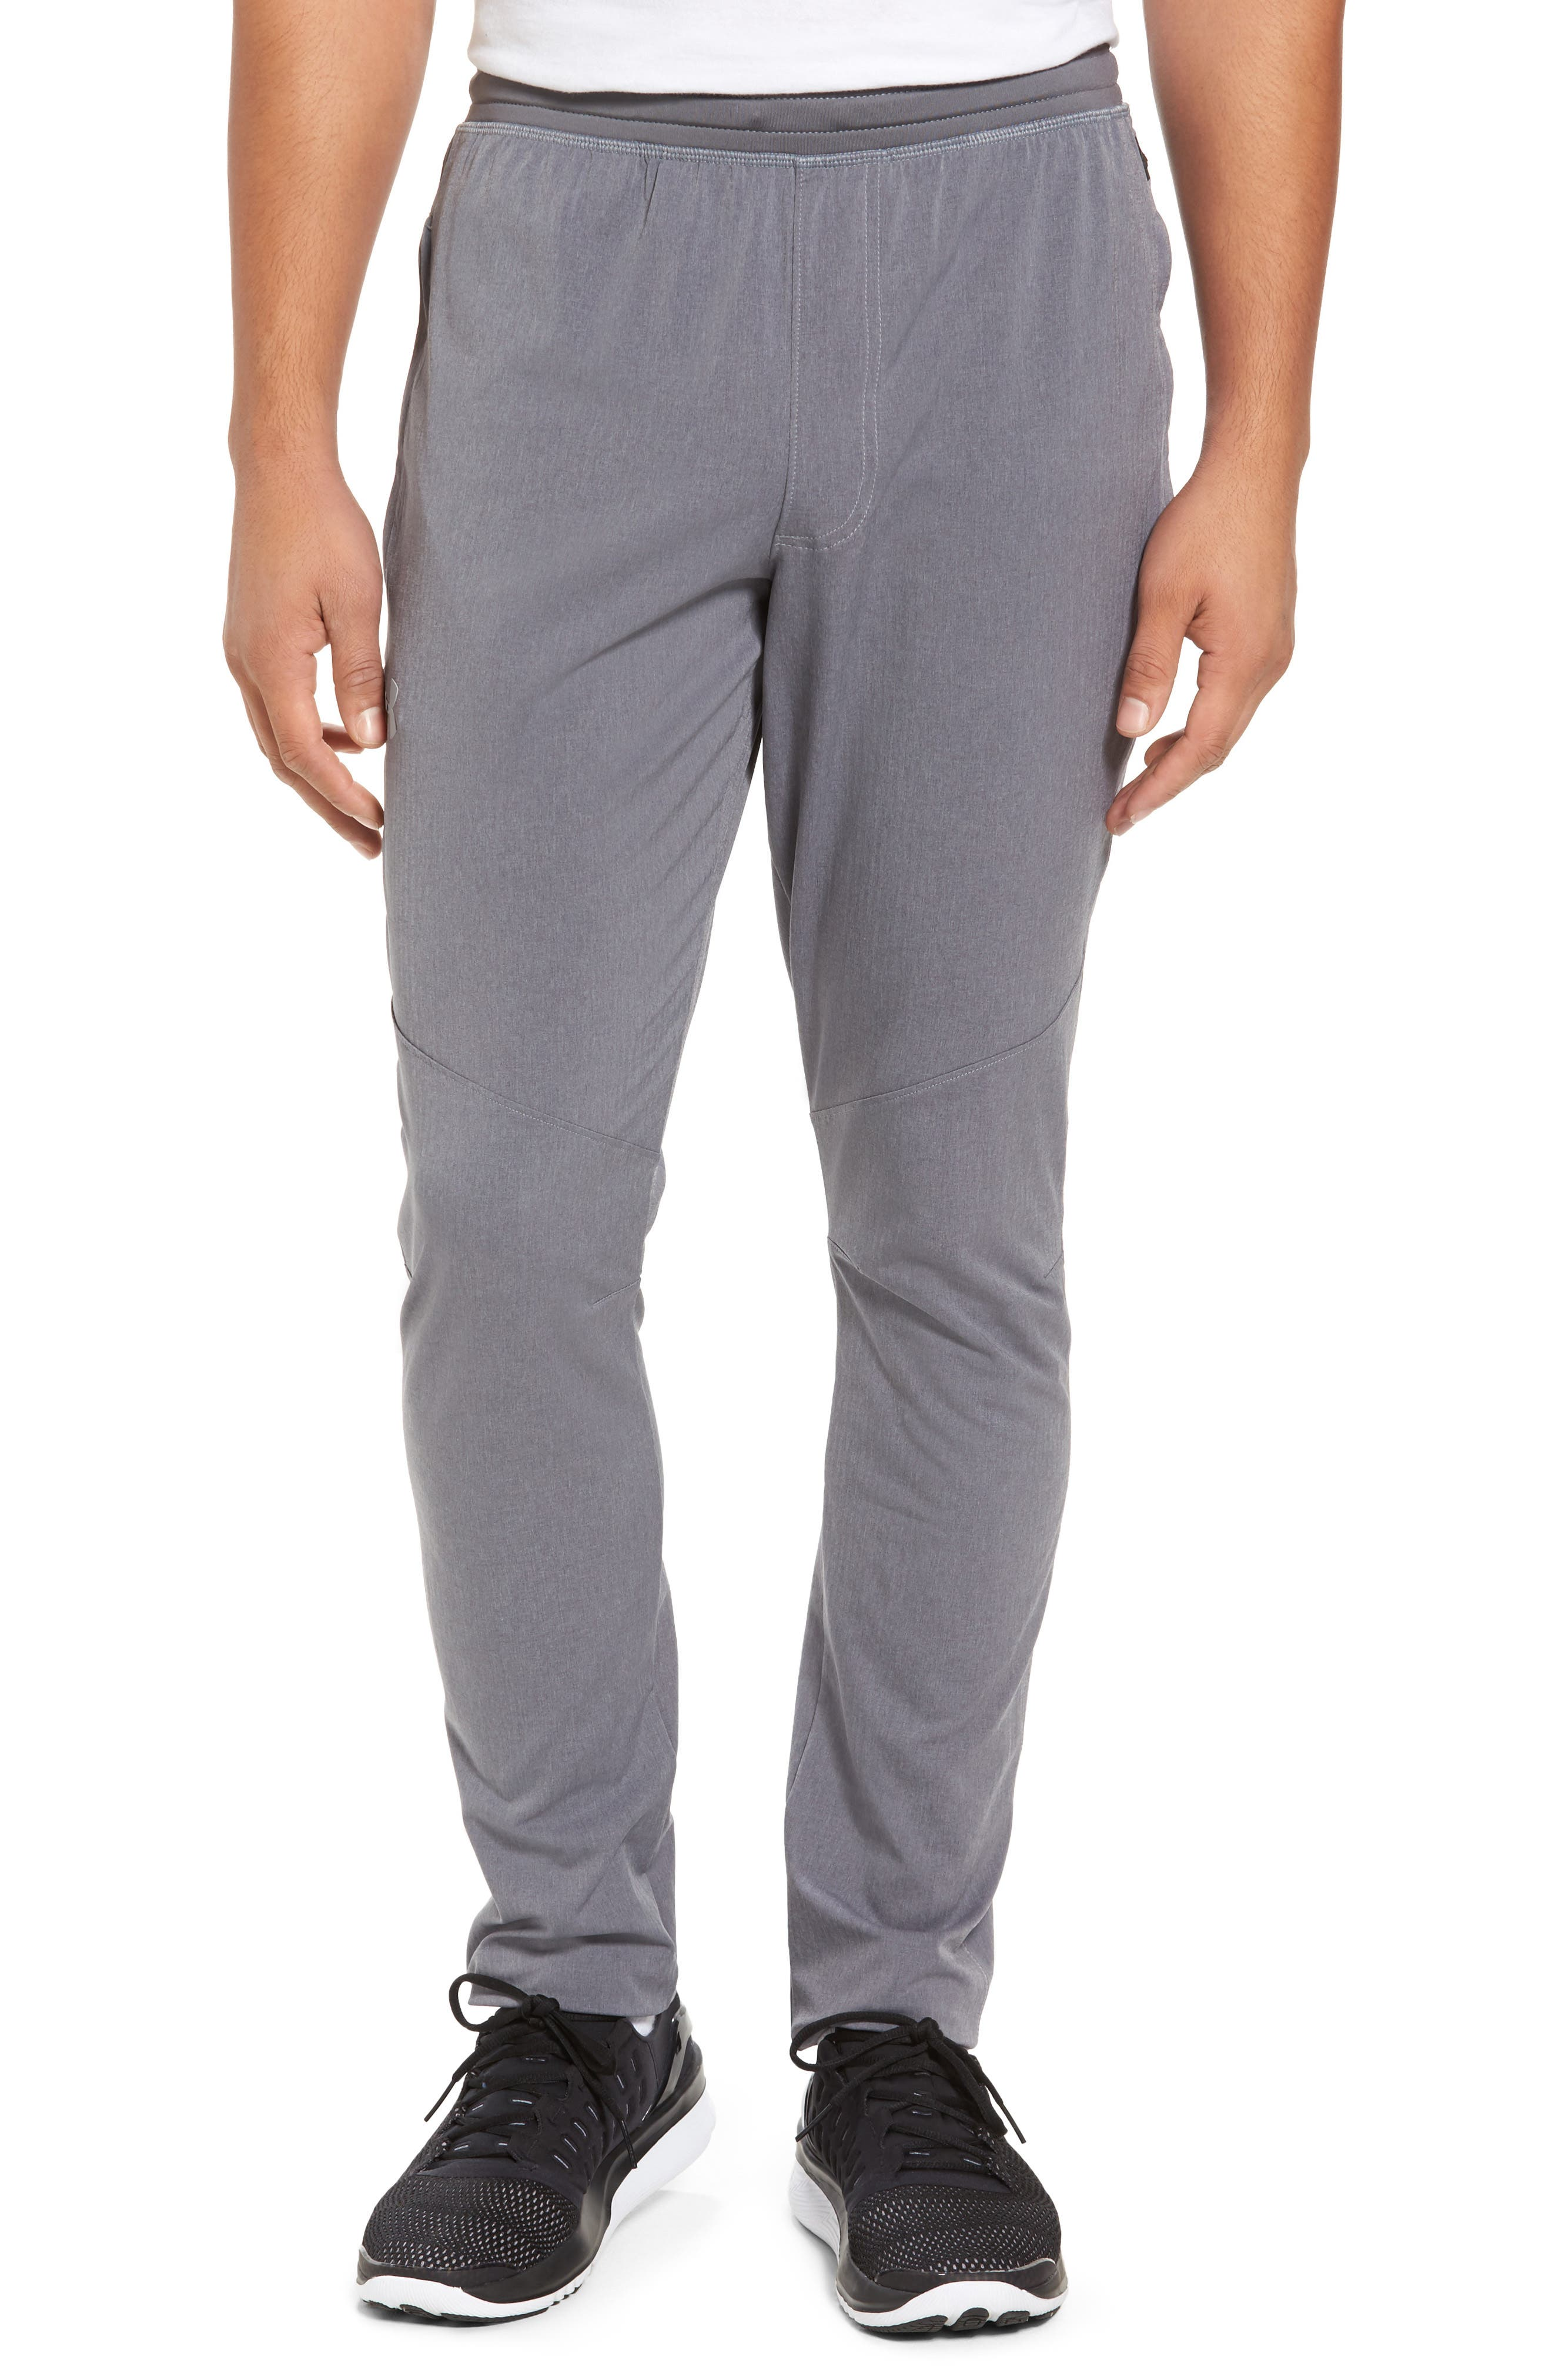 Fitted Woven Training Pants,                             Main thumbnail 1, color,                             Grey Heather / Black / Steel